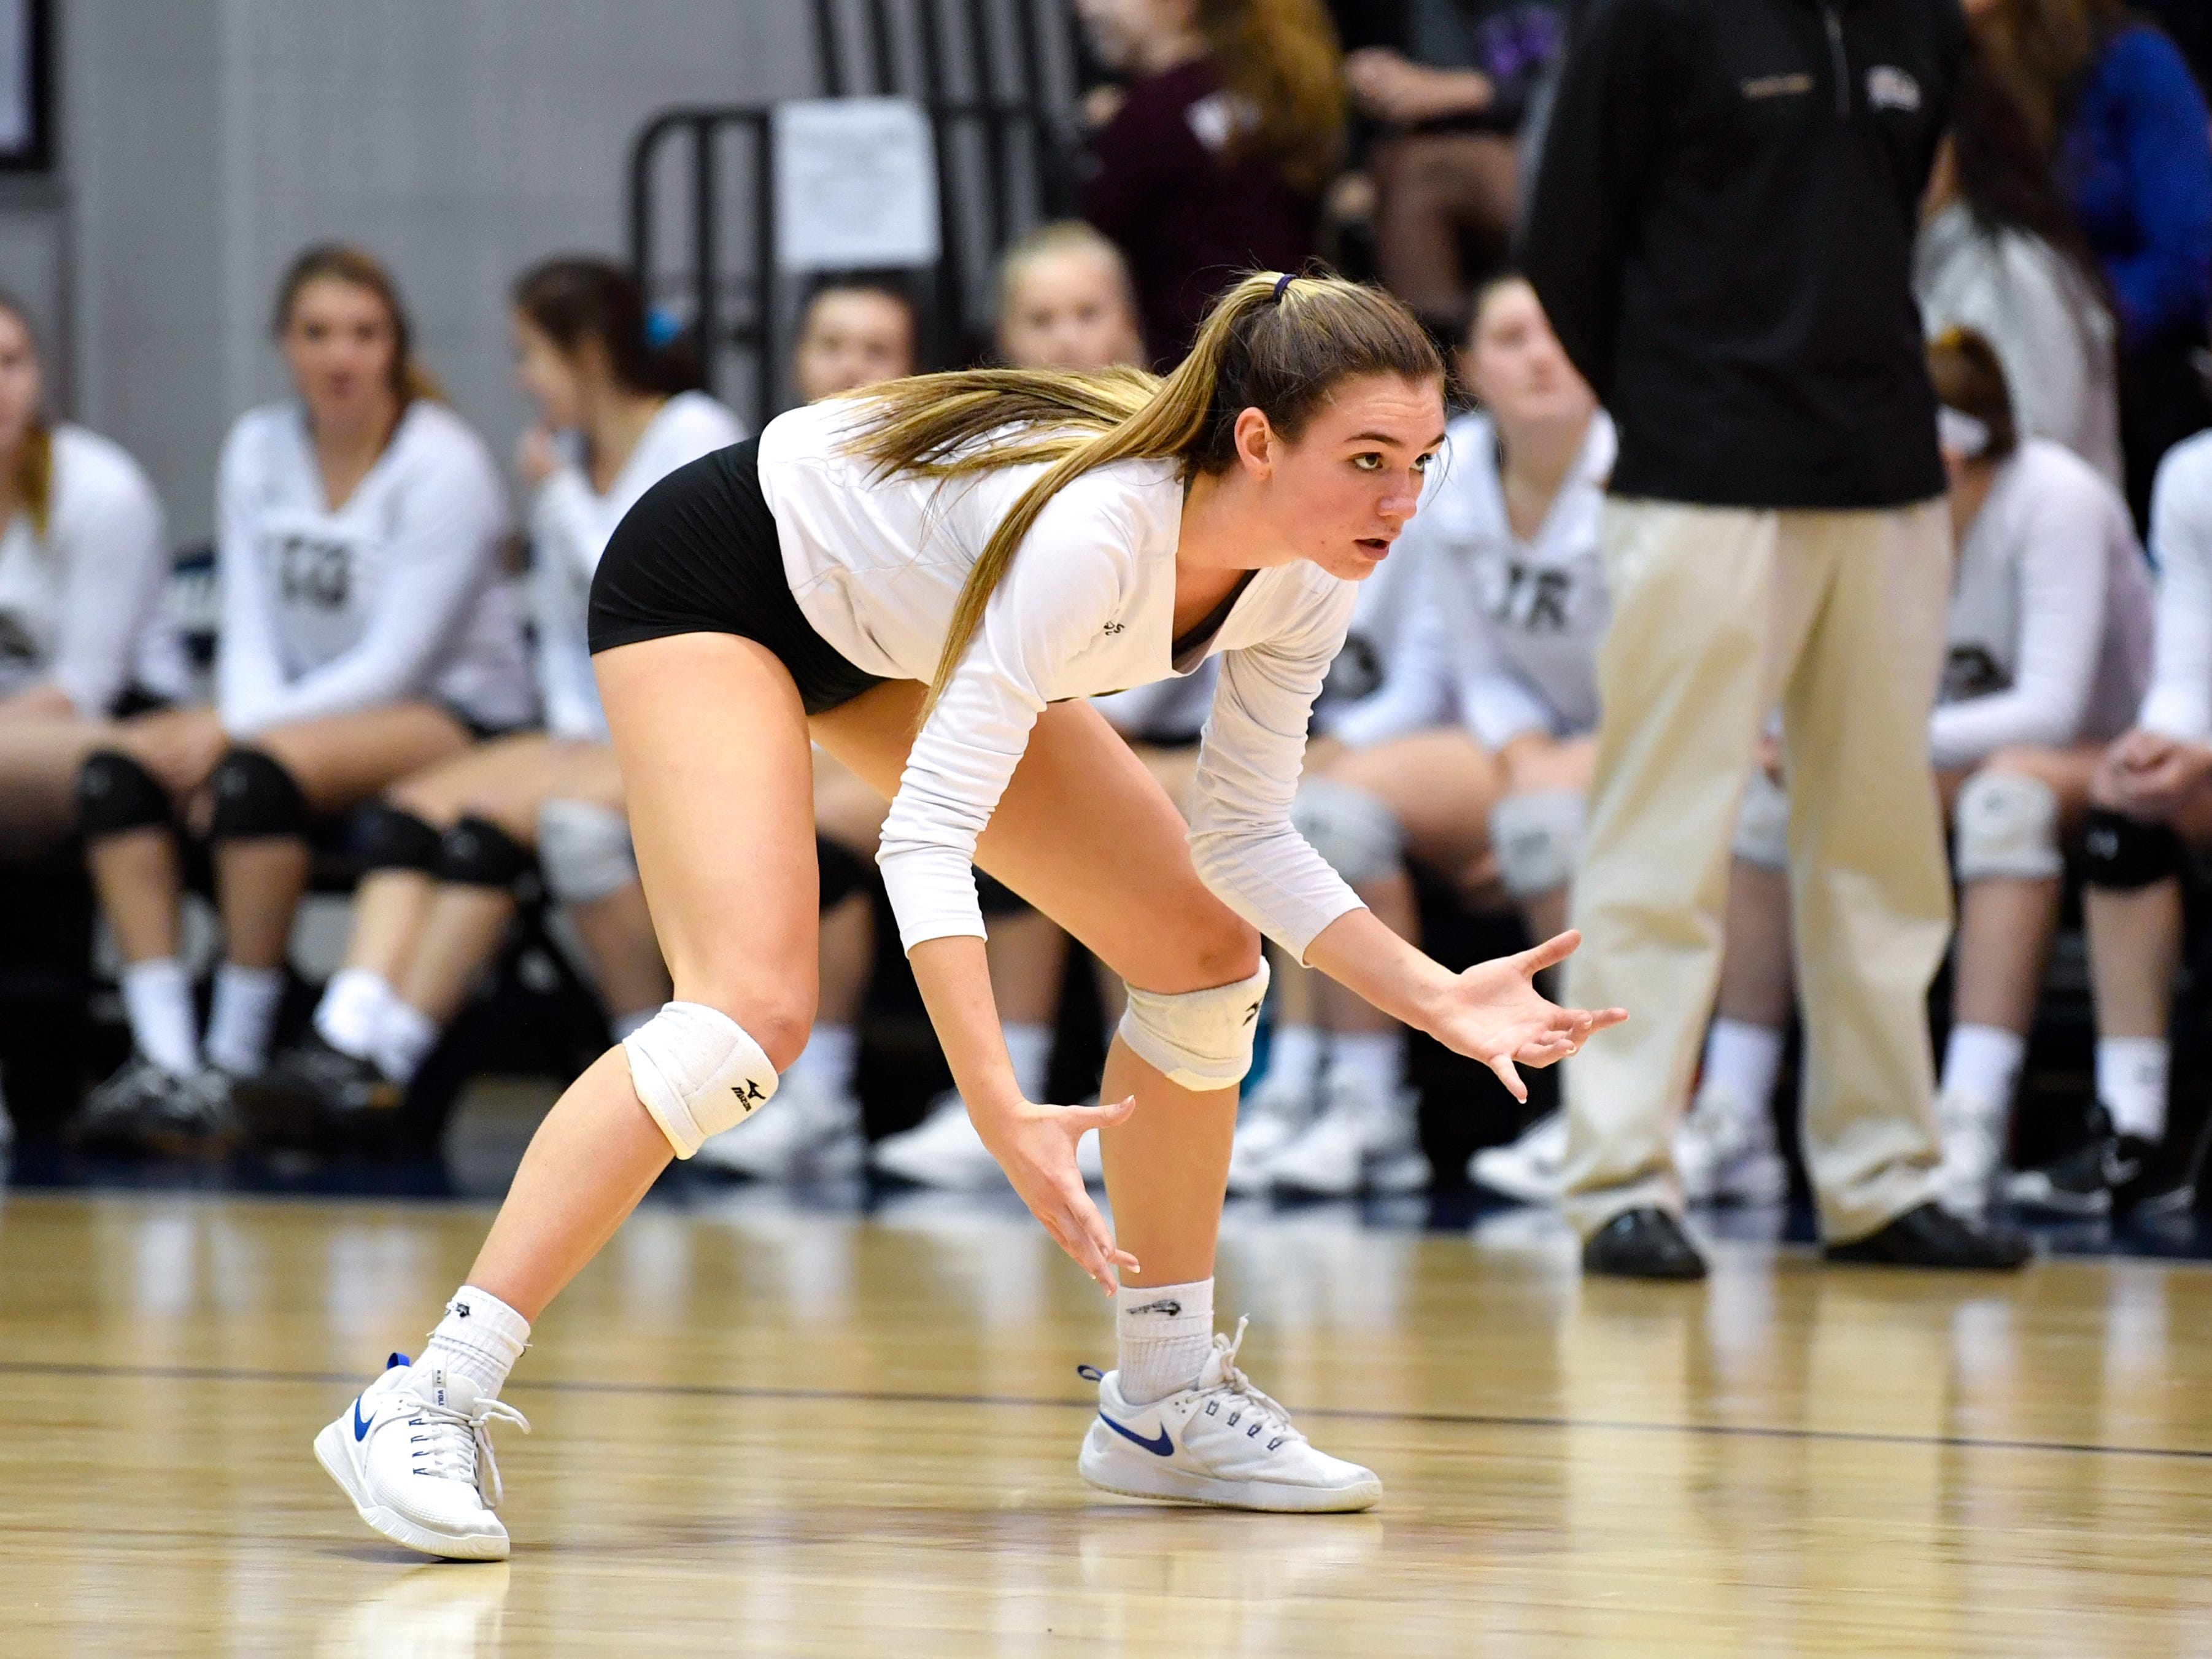 Maddie Clabaugh (1) of Delone Catholic gets low as Eastern York serves during the YAIAA league volleyball tournament semifinals between Eastern York and Delone Catholic, Tuesday, October 23, 2018. The Squirettes defeated the Golden Knights 3-2.